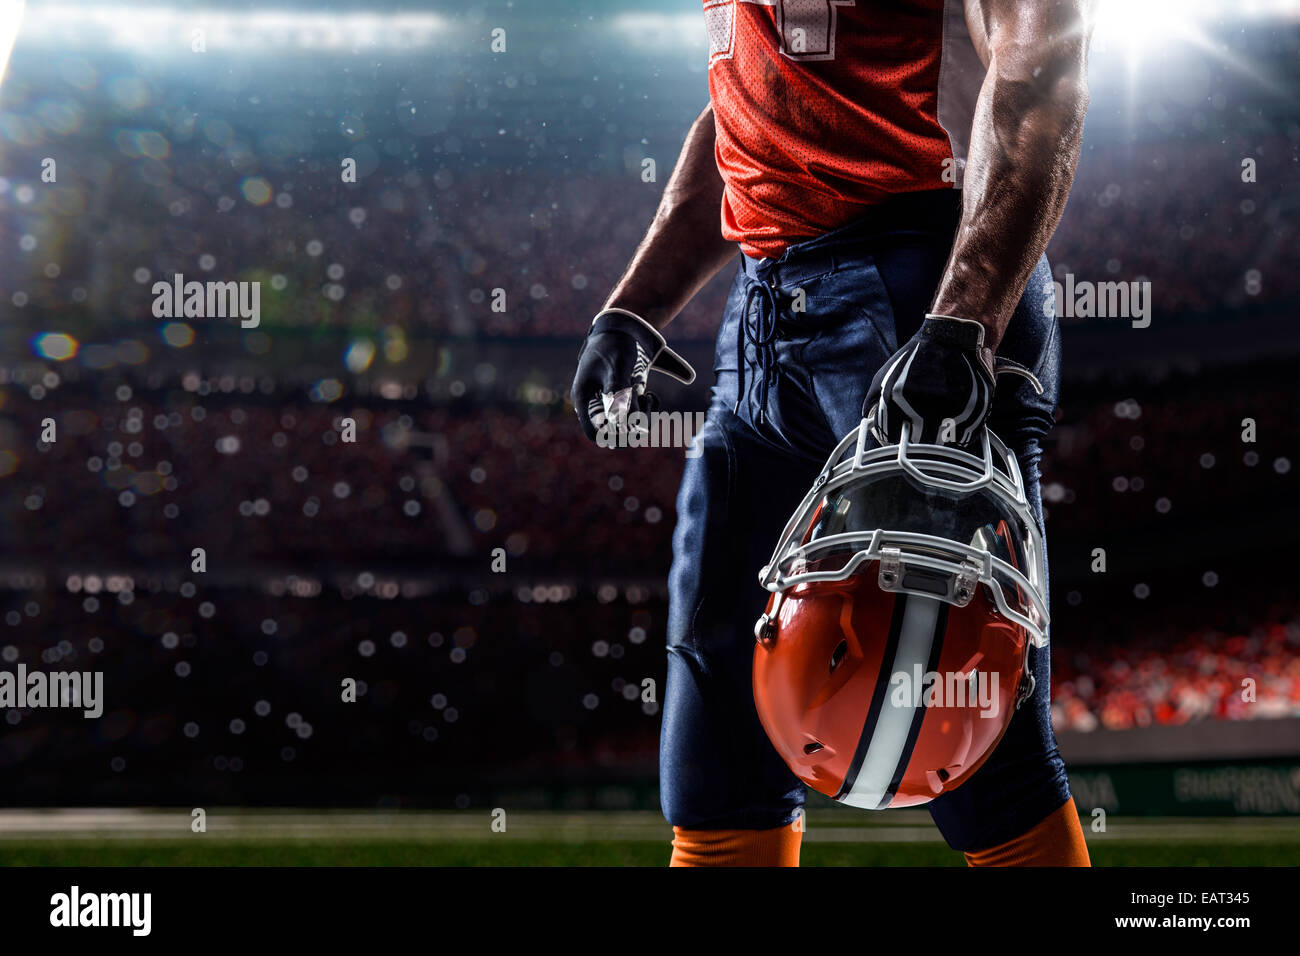 American Football sportivo player in stadio olimpico Immagini Stock